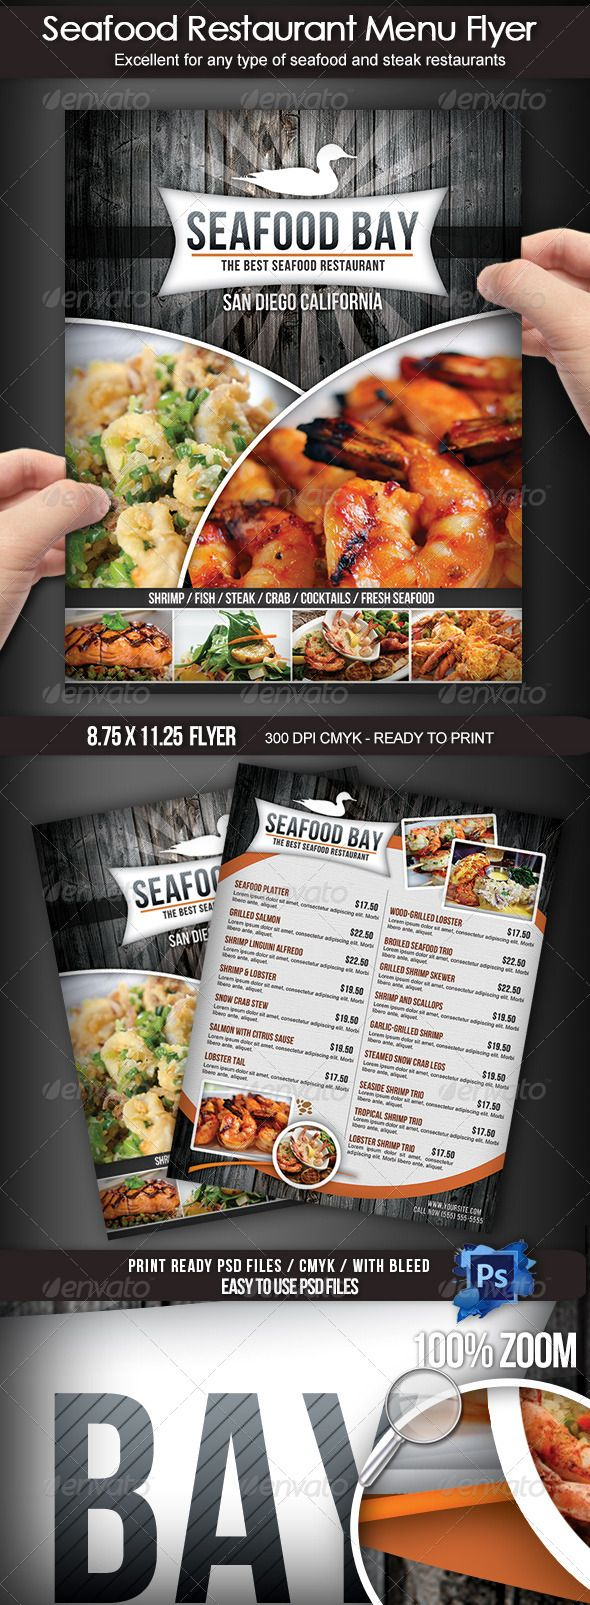 Seafood restaurant menu flyer pinterest design